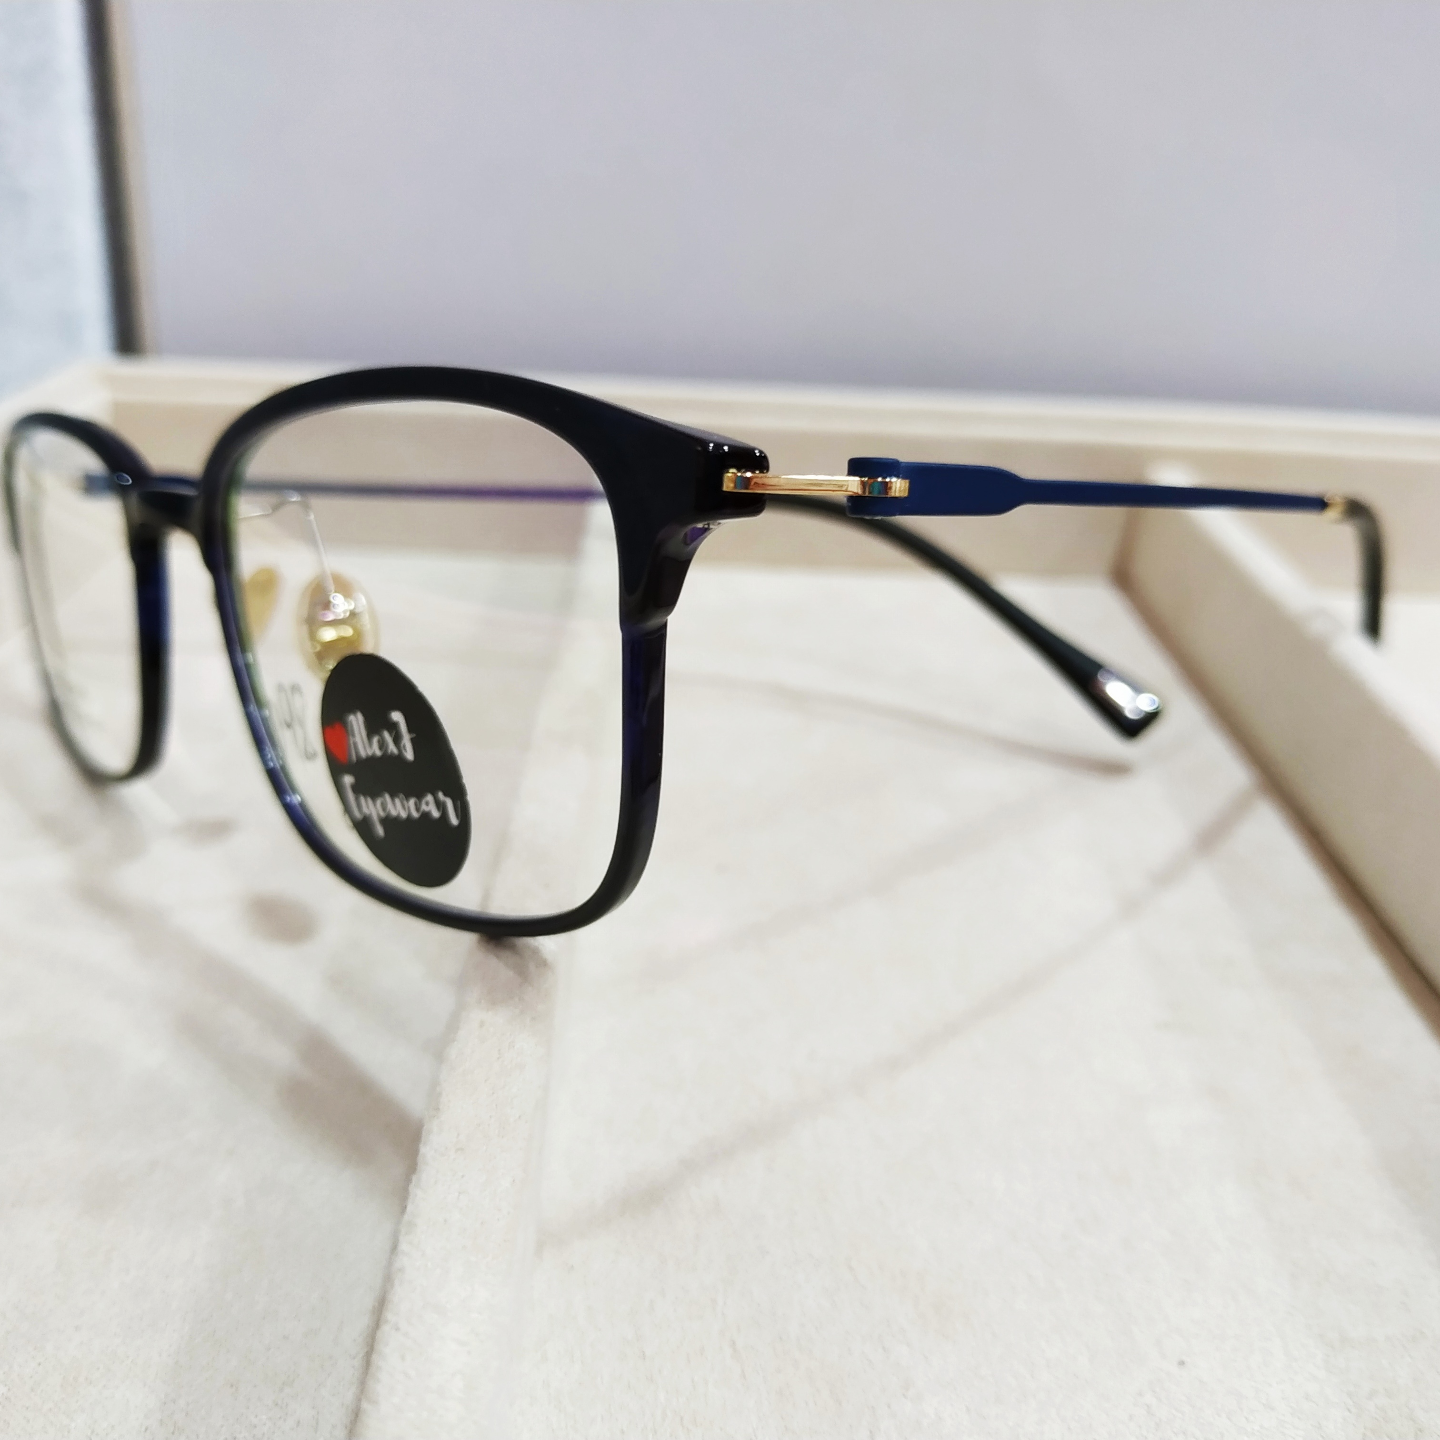 AlexJ Eyewear 8206 with cr39 1.56 mc emi